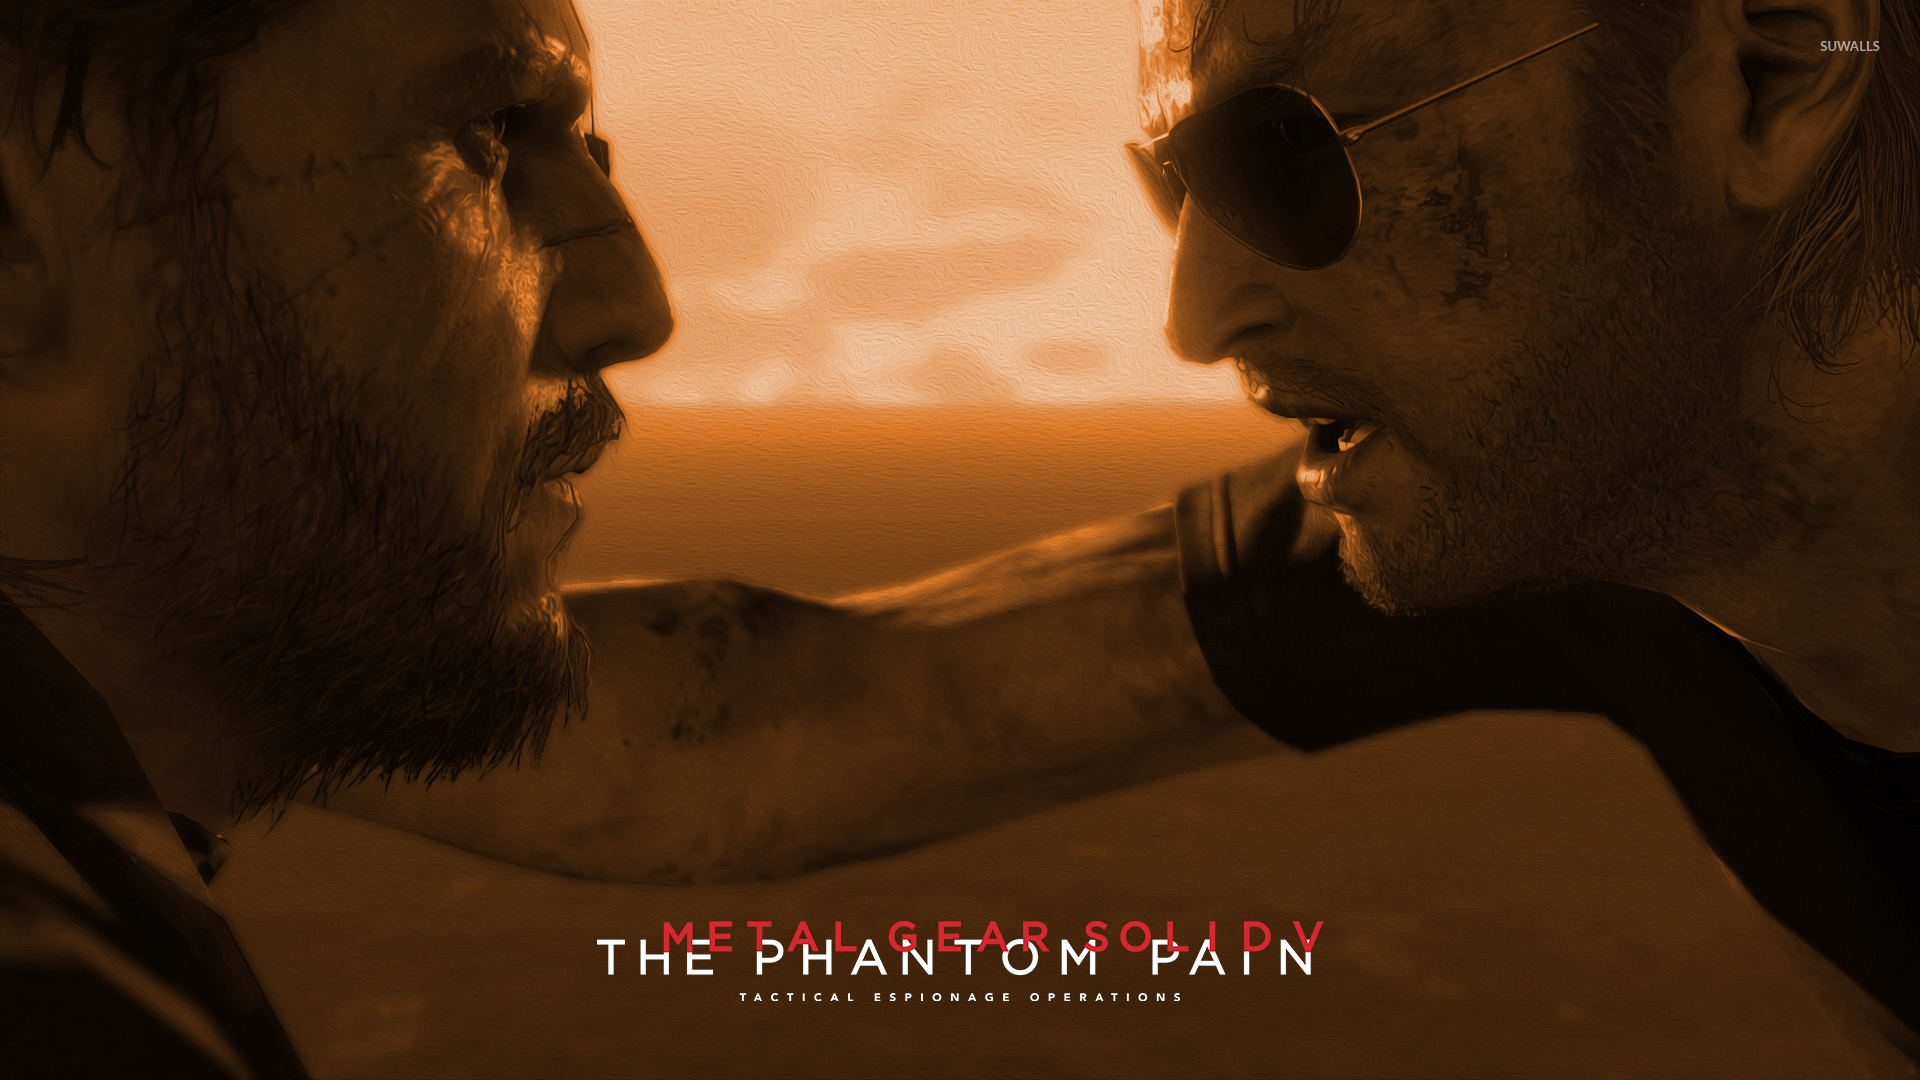 Kaz And Snake Metal Gear Solid V The Phantom Pain Wallpaper Game Wallpapers 49409 Born to a american allied officer and a japanese prostitute, miller was born and raised in japan by his mother as his father returned to the untied states. kaz and snake metal gear solid v the